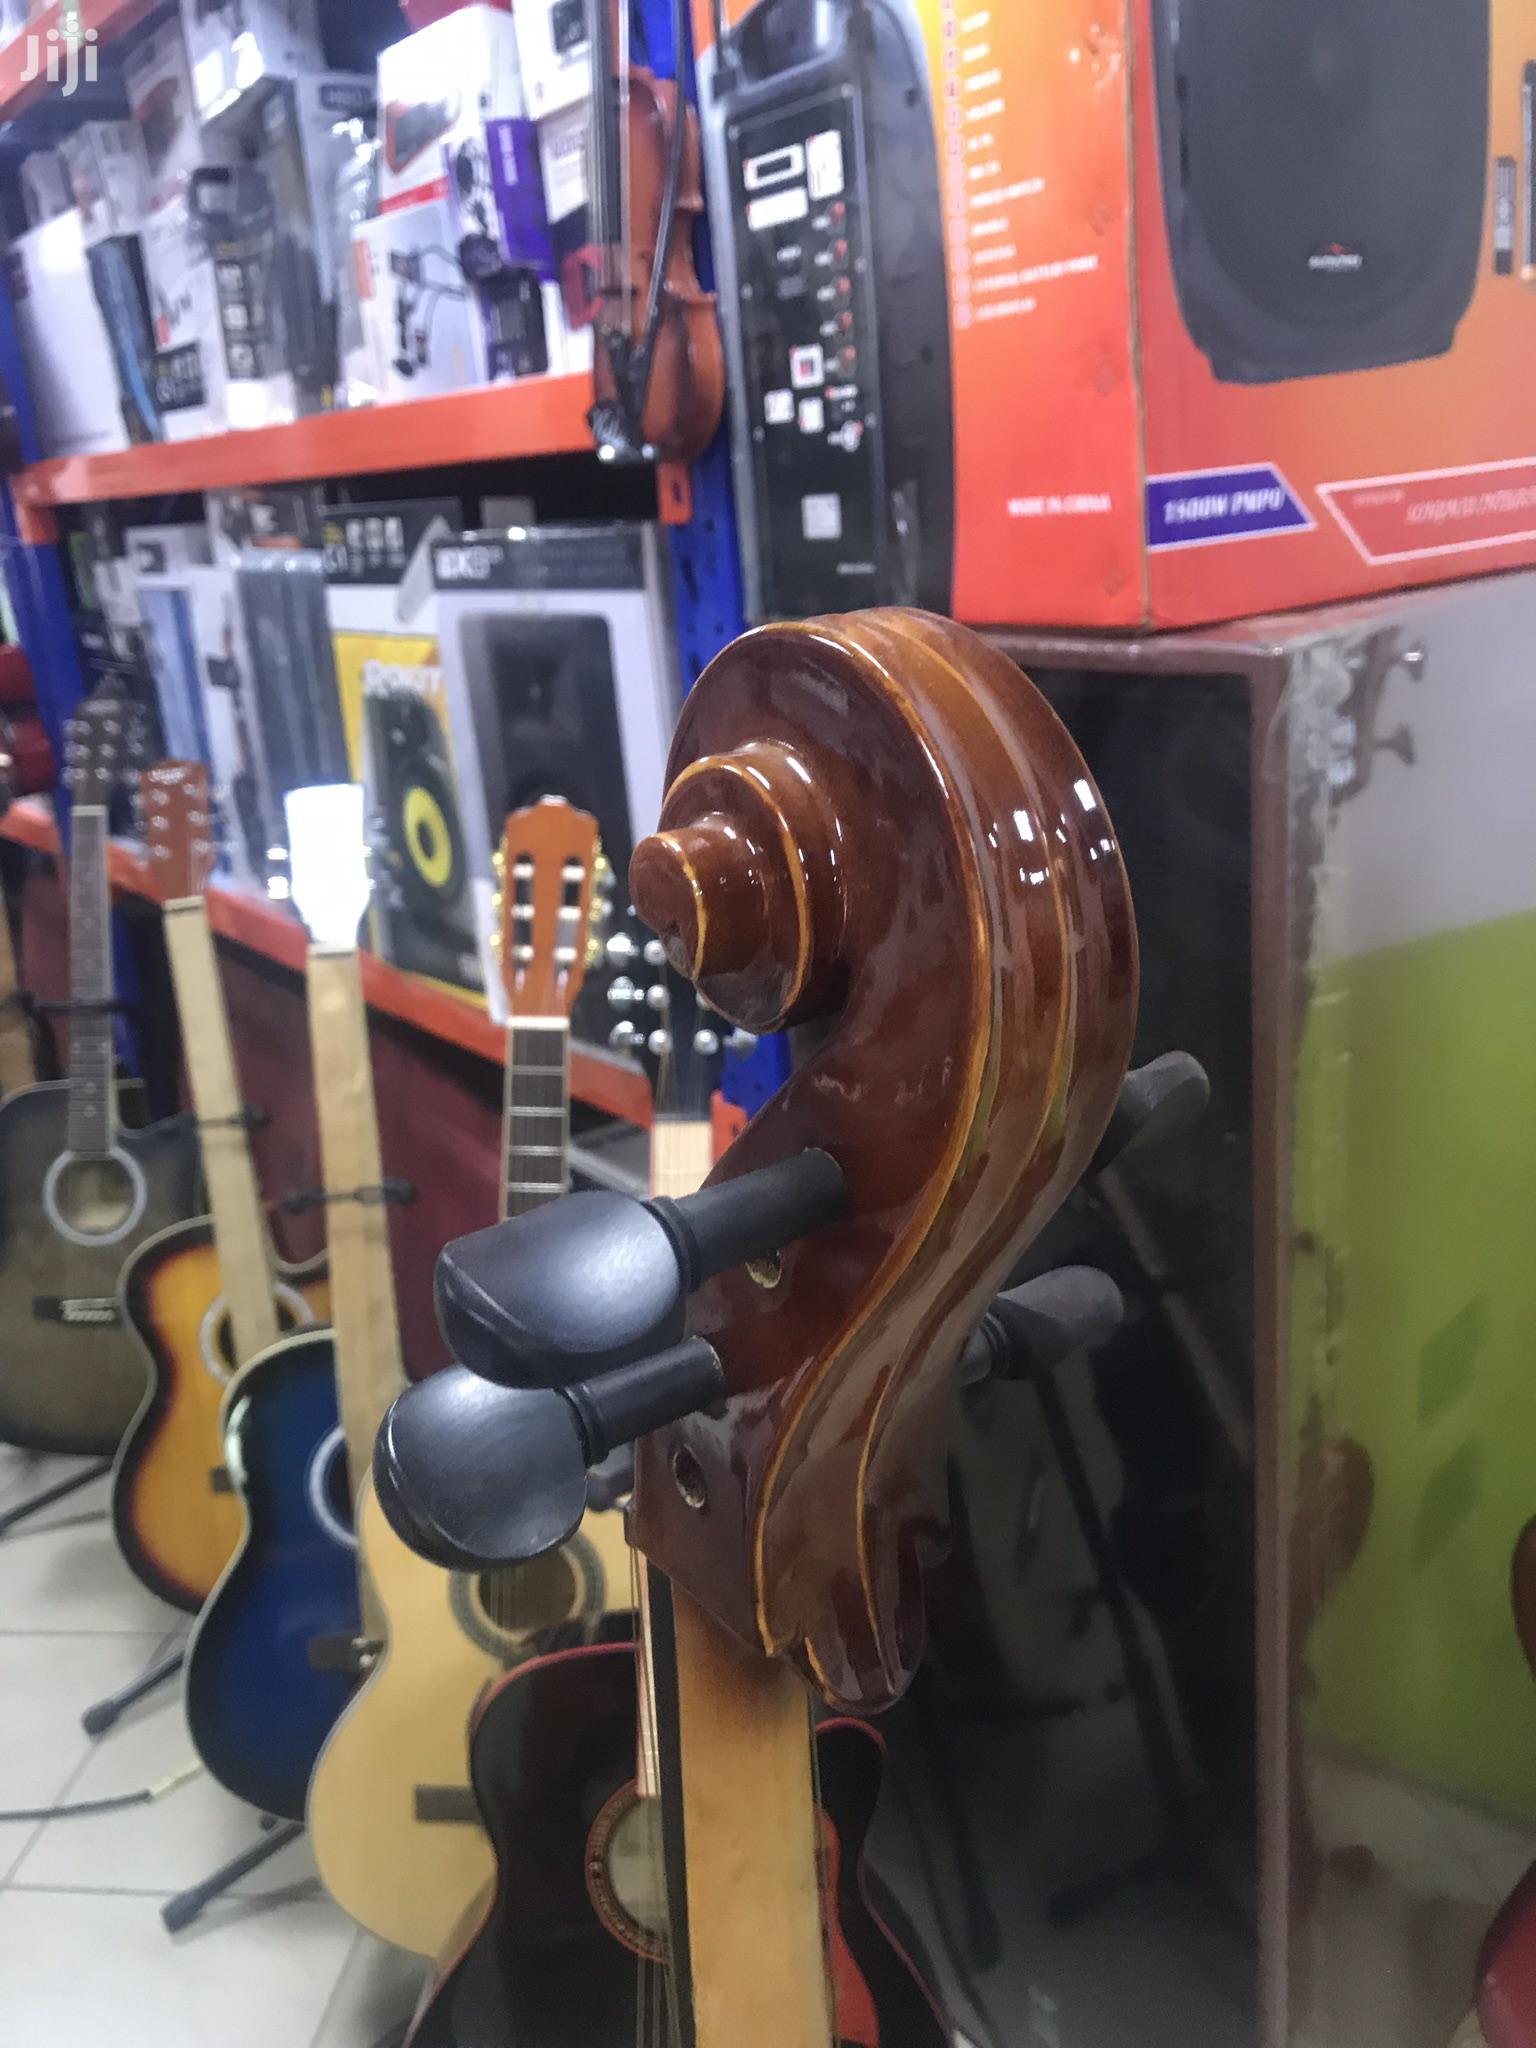 Gallant Professional Concert Cello With Bag   Musical Instruments & Gear for sale in East Legon, Greater Accra, Ghana